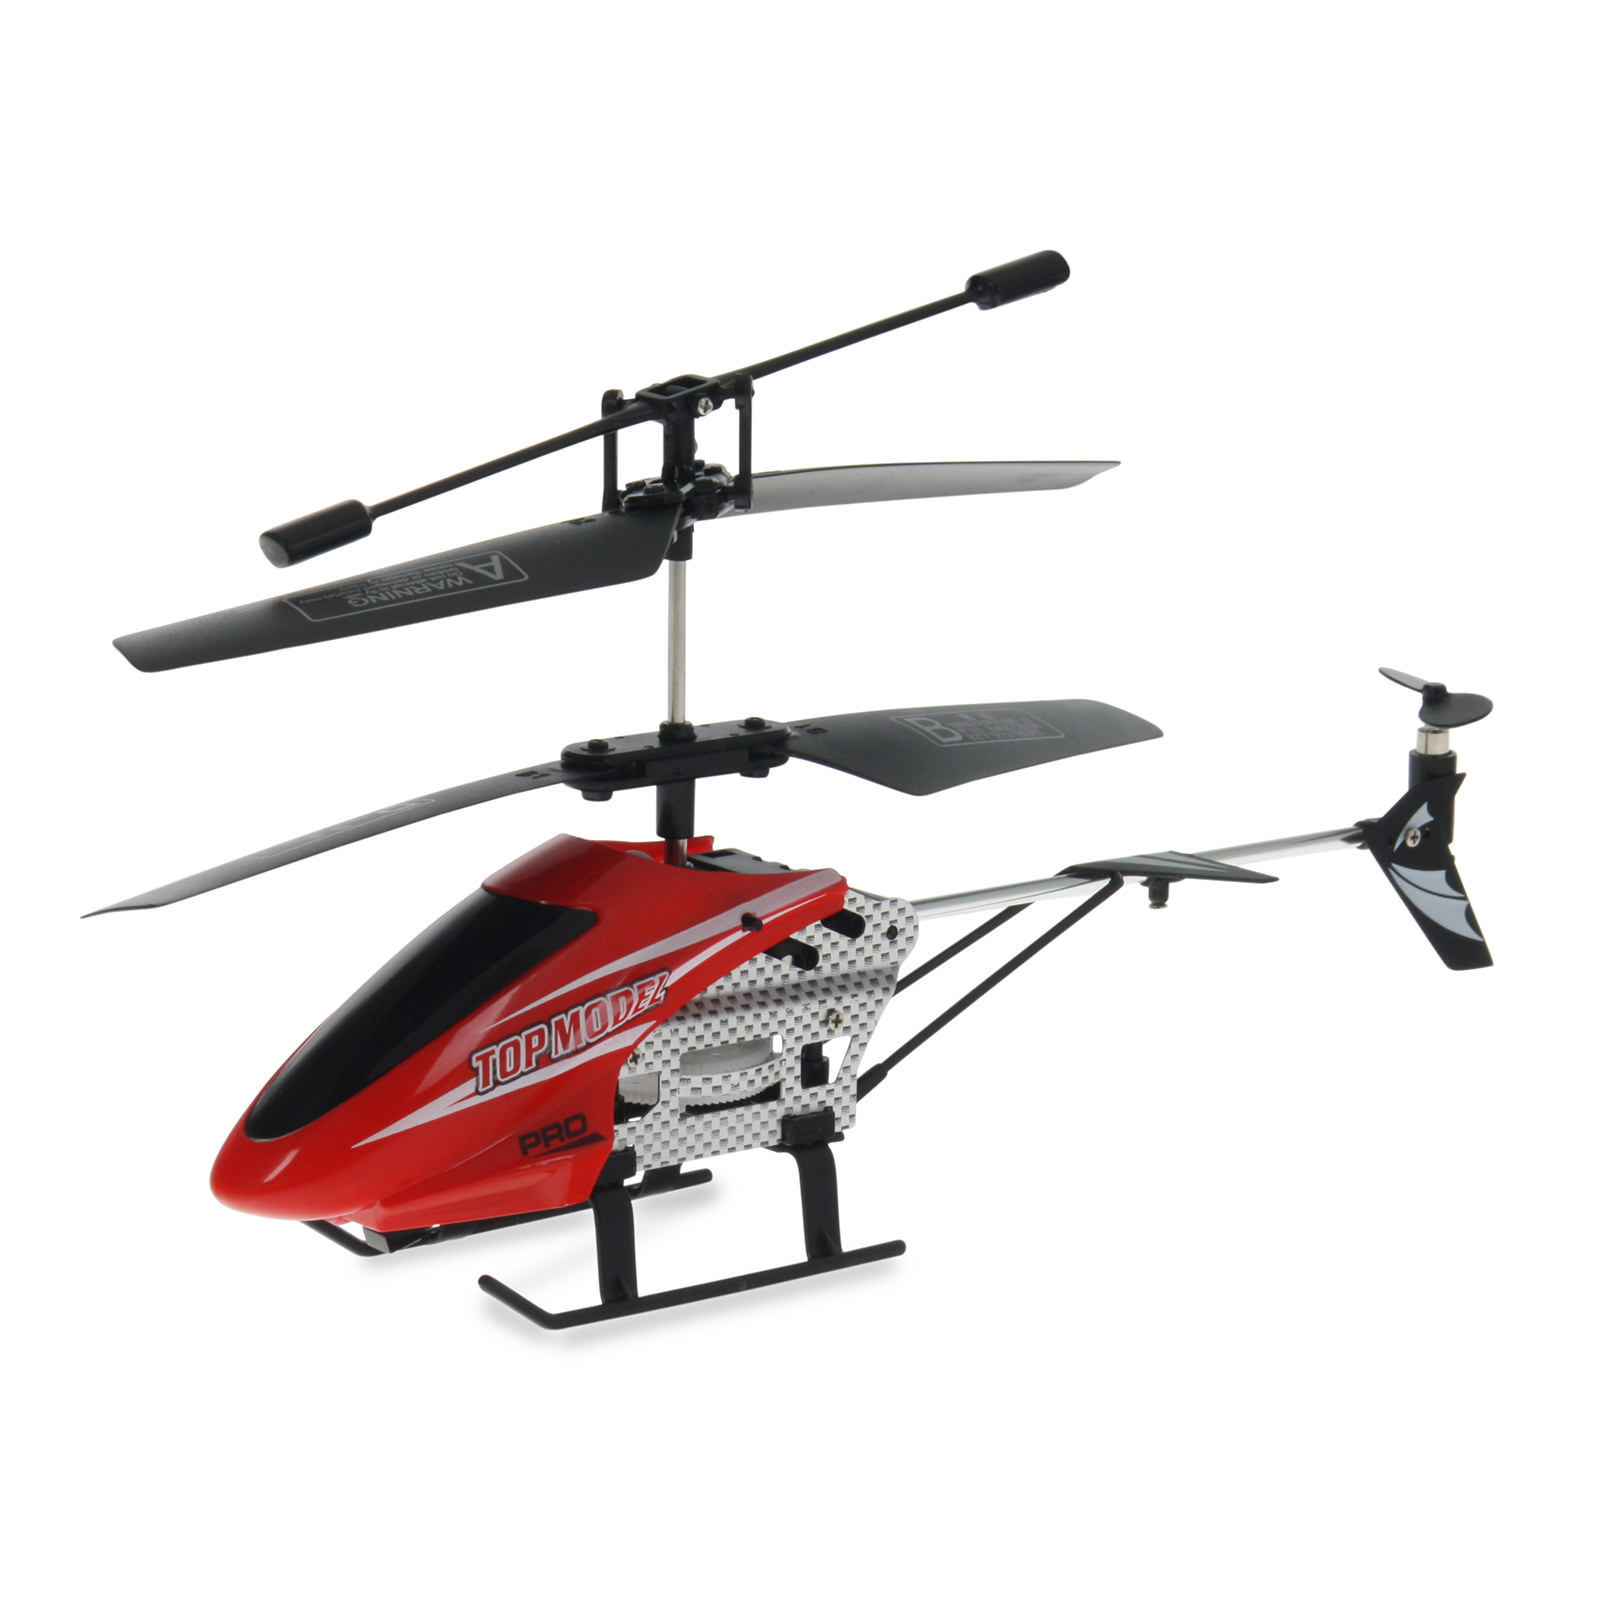 top model 561920 red rc helicopter at hobby warehouse. Black Bedroom Furniture Sets. Home Design Ideas